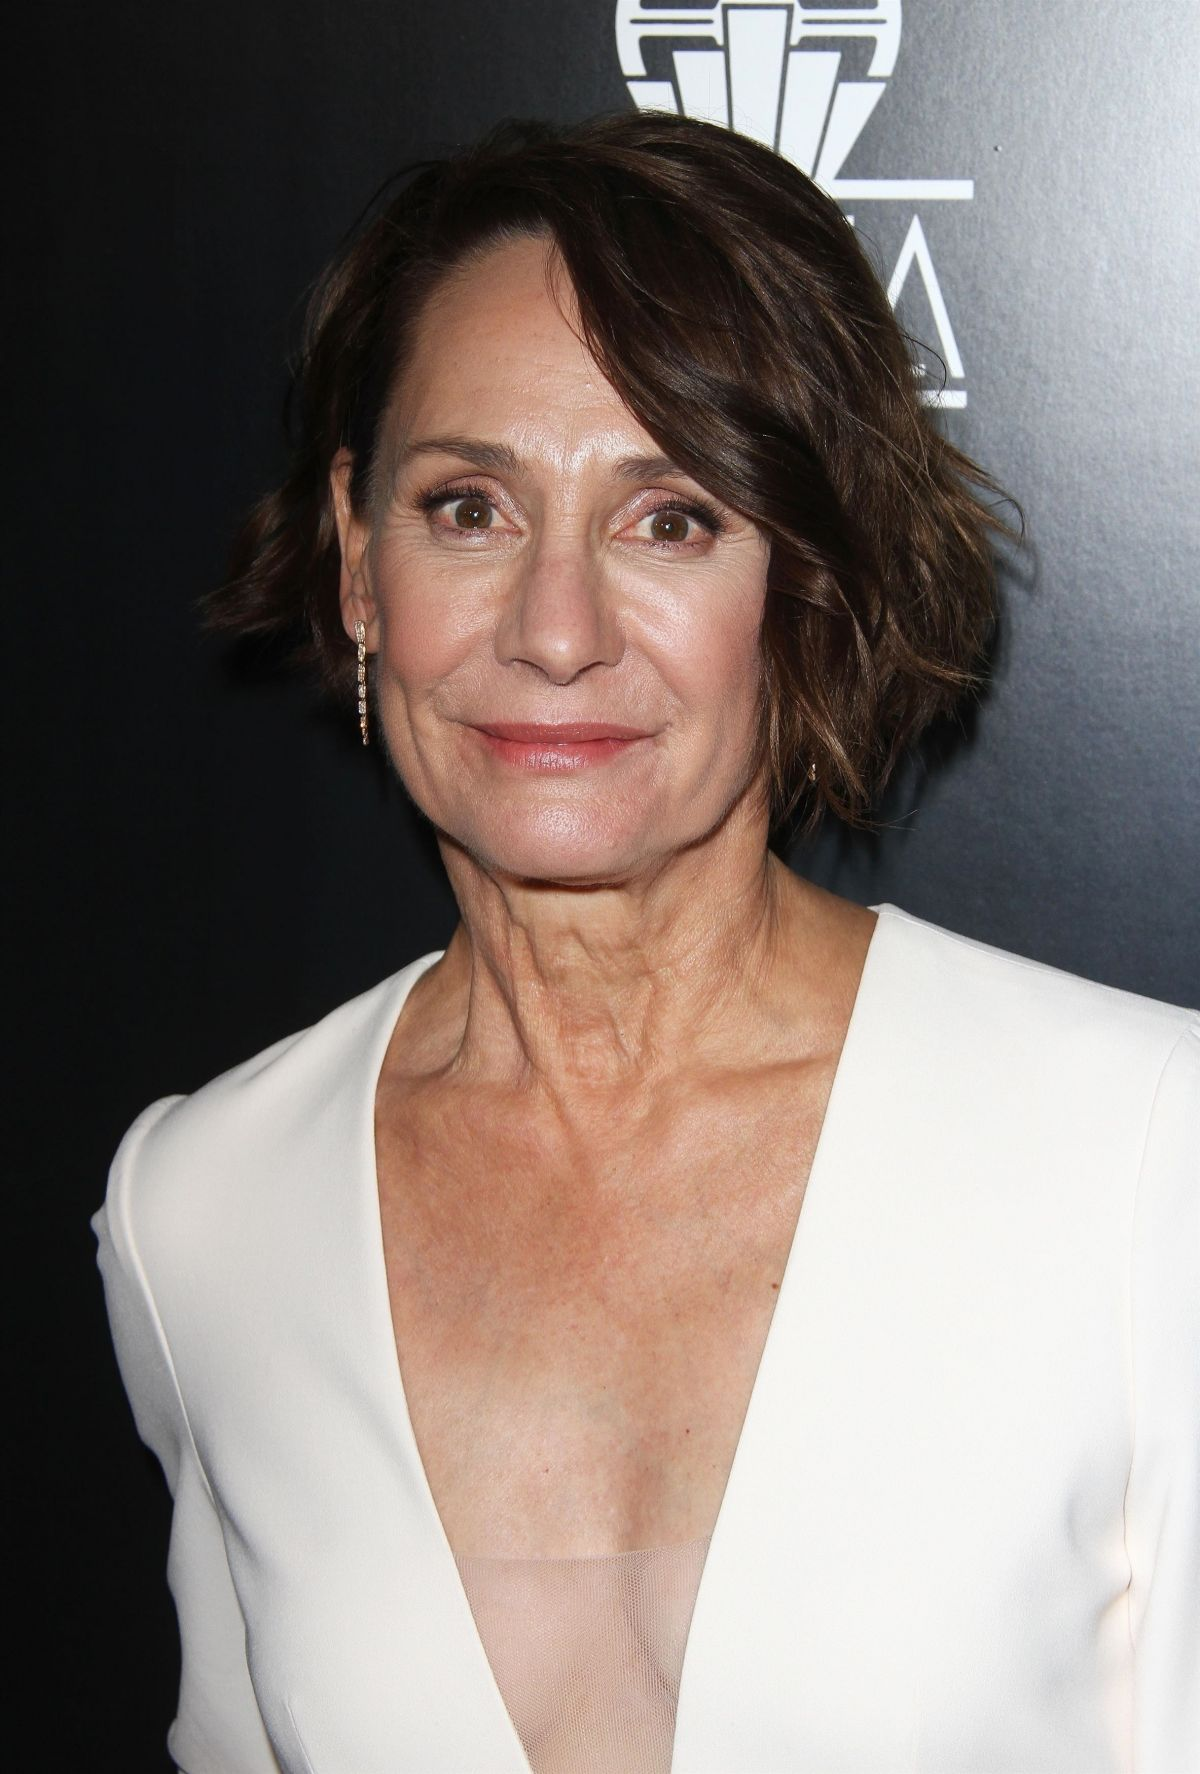 Laurie Metcalf Laurie Metcalf new photo